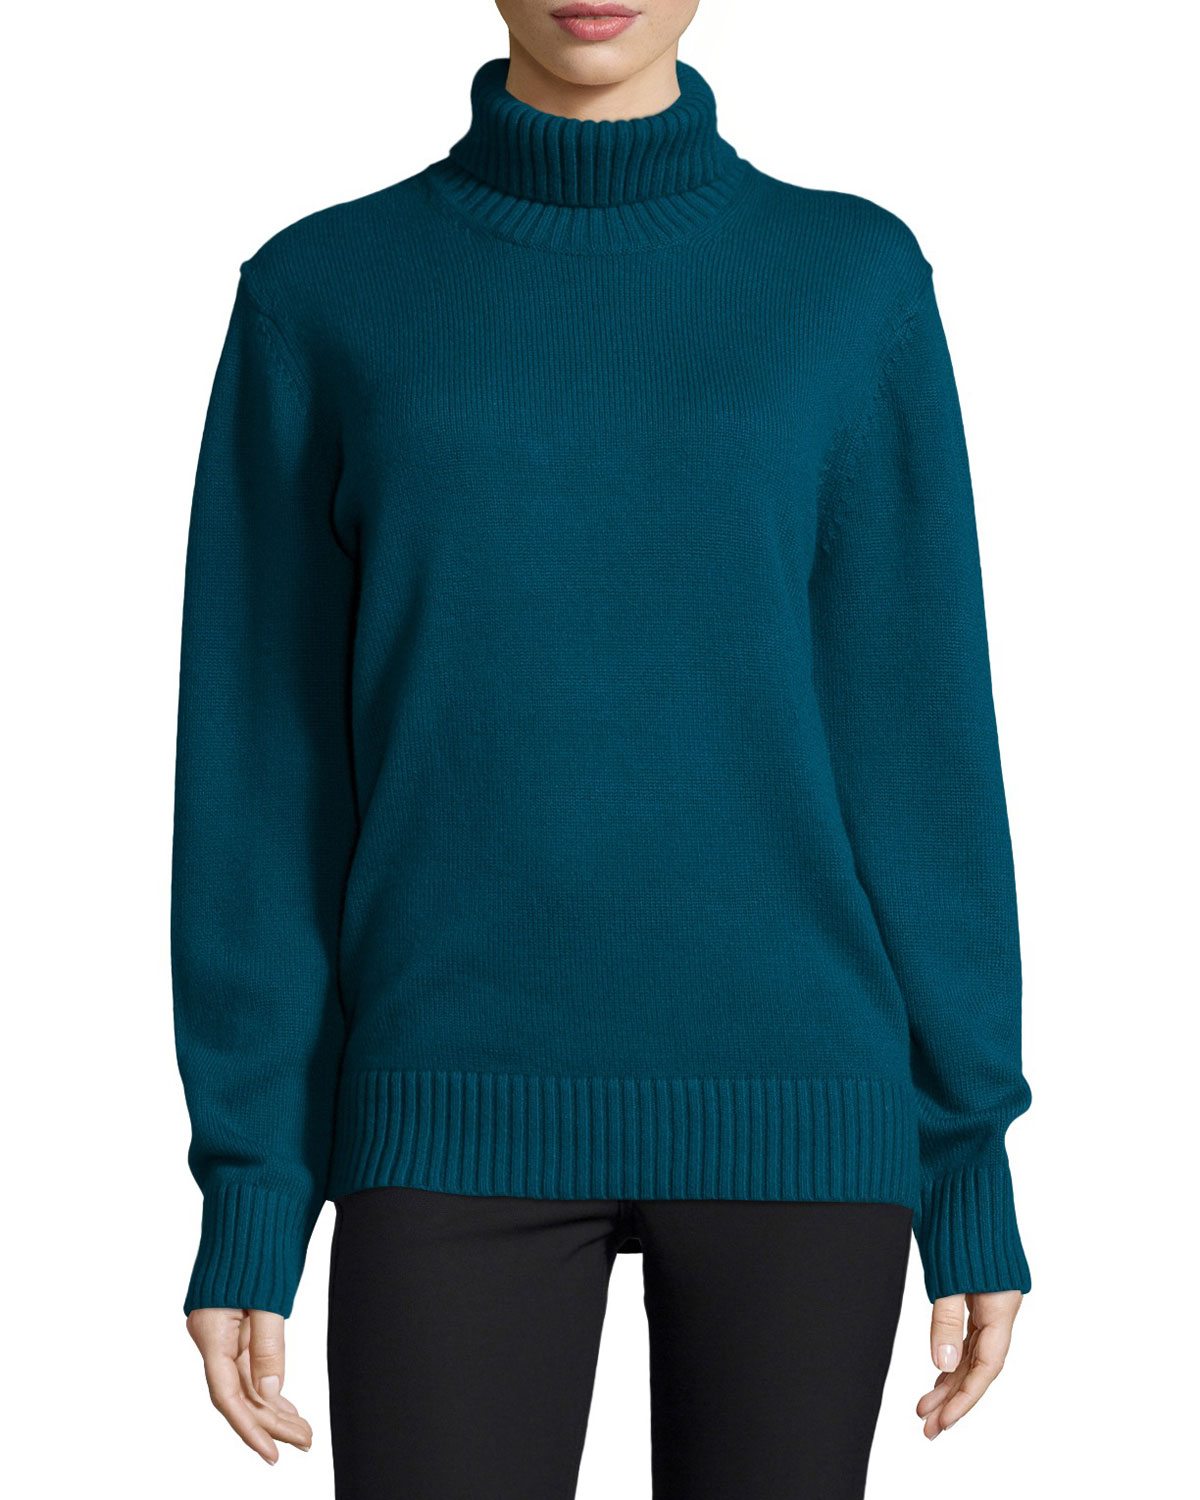 Long-Sleeve Cashmere Turtleneck Sweater, Peacock